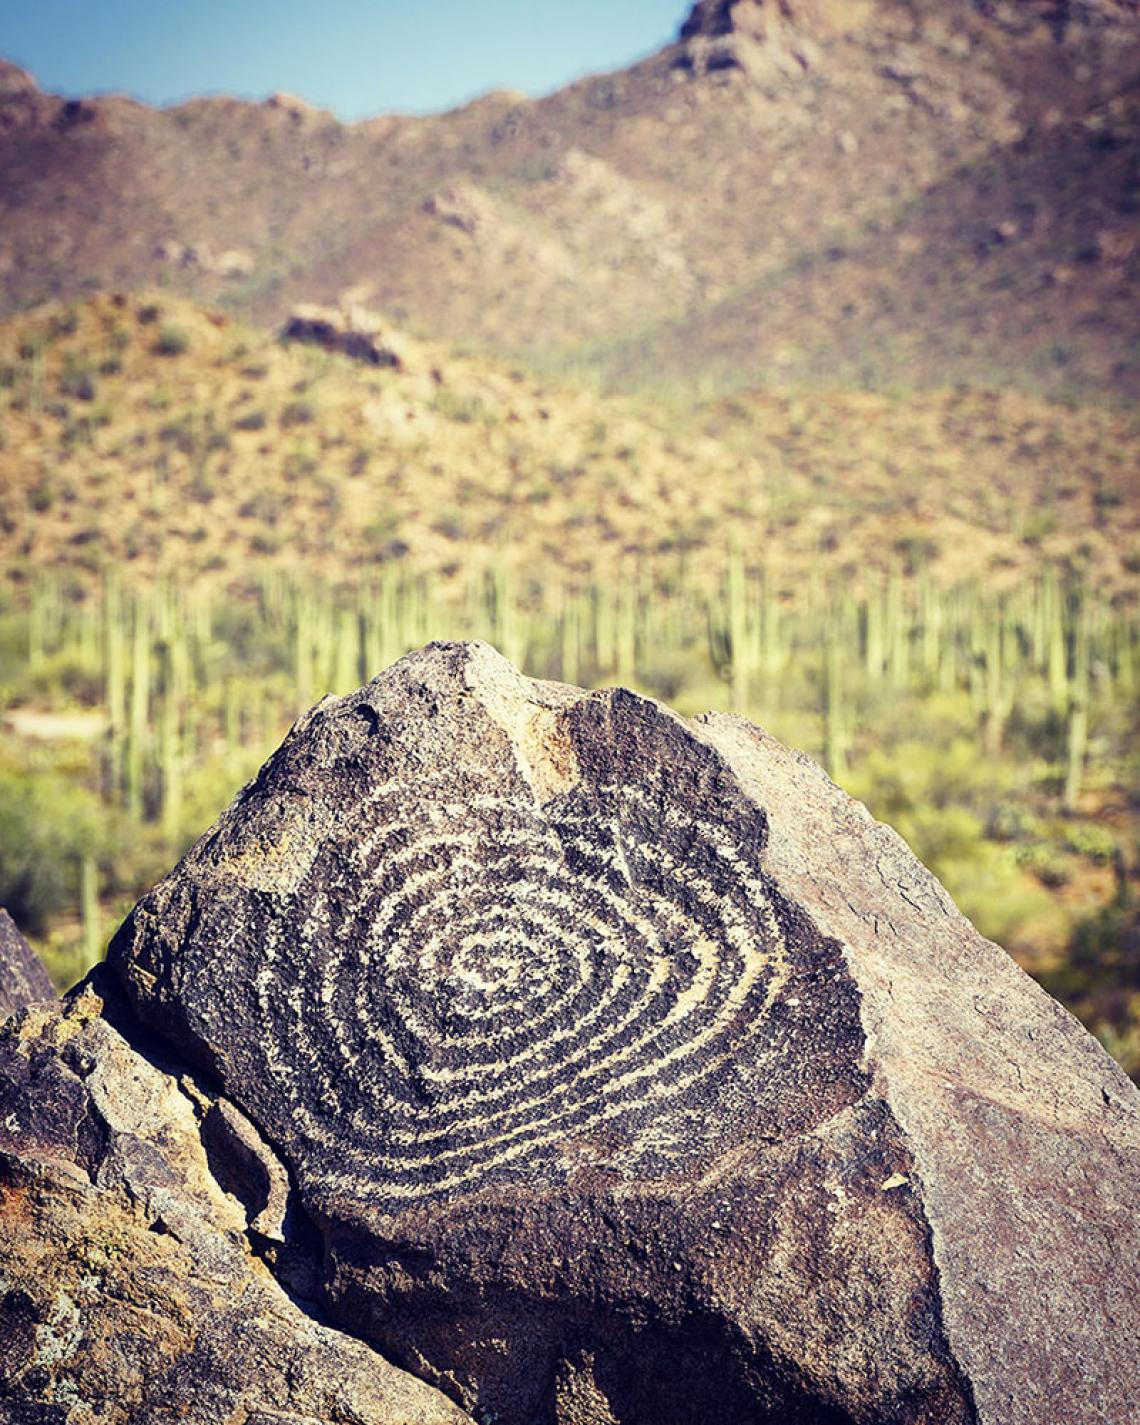 Signal Hill at Saguaro National Park